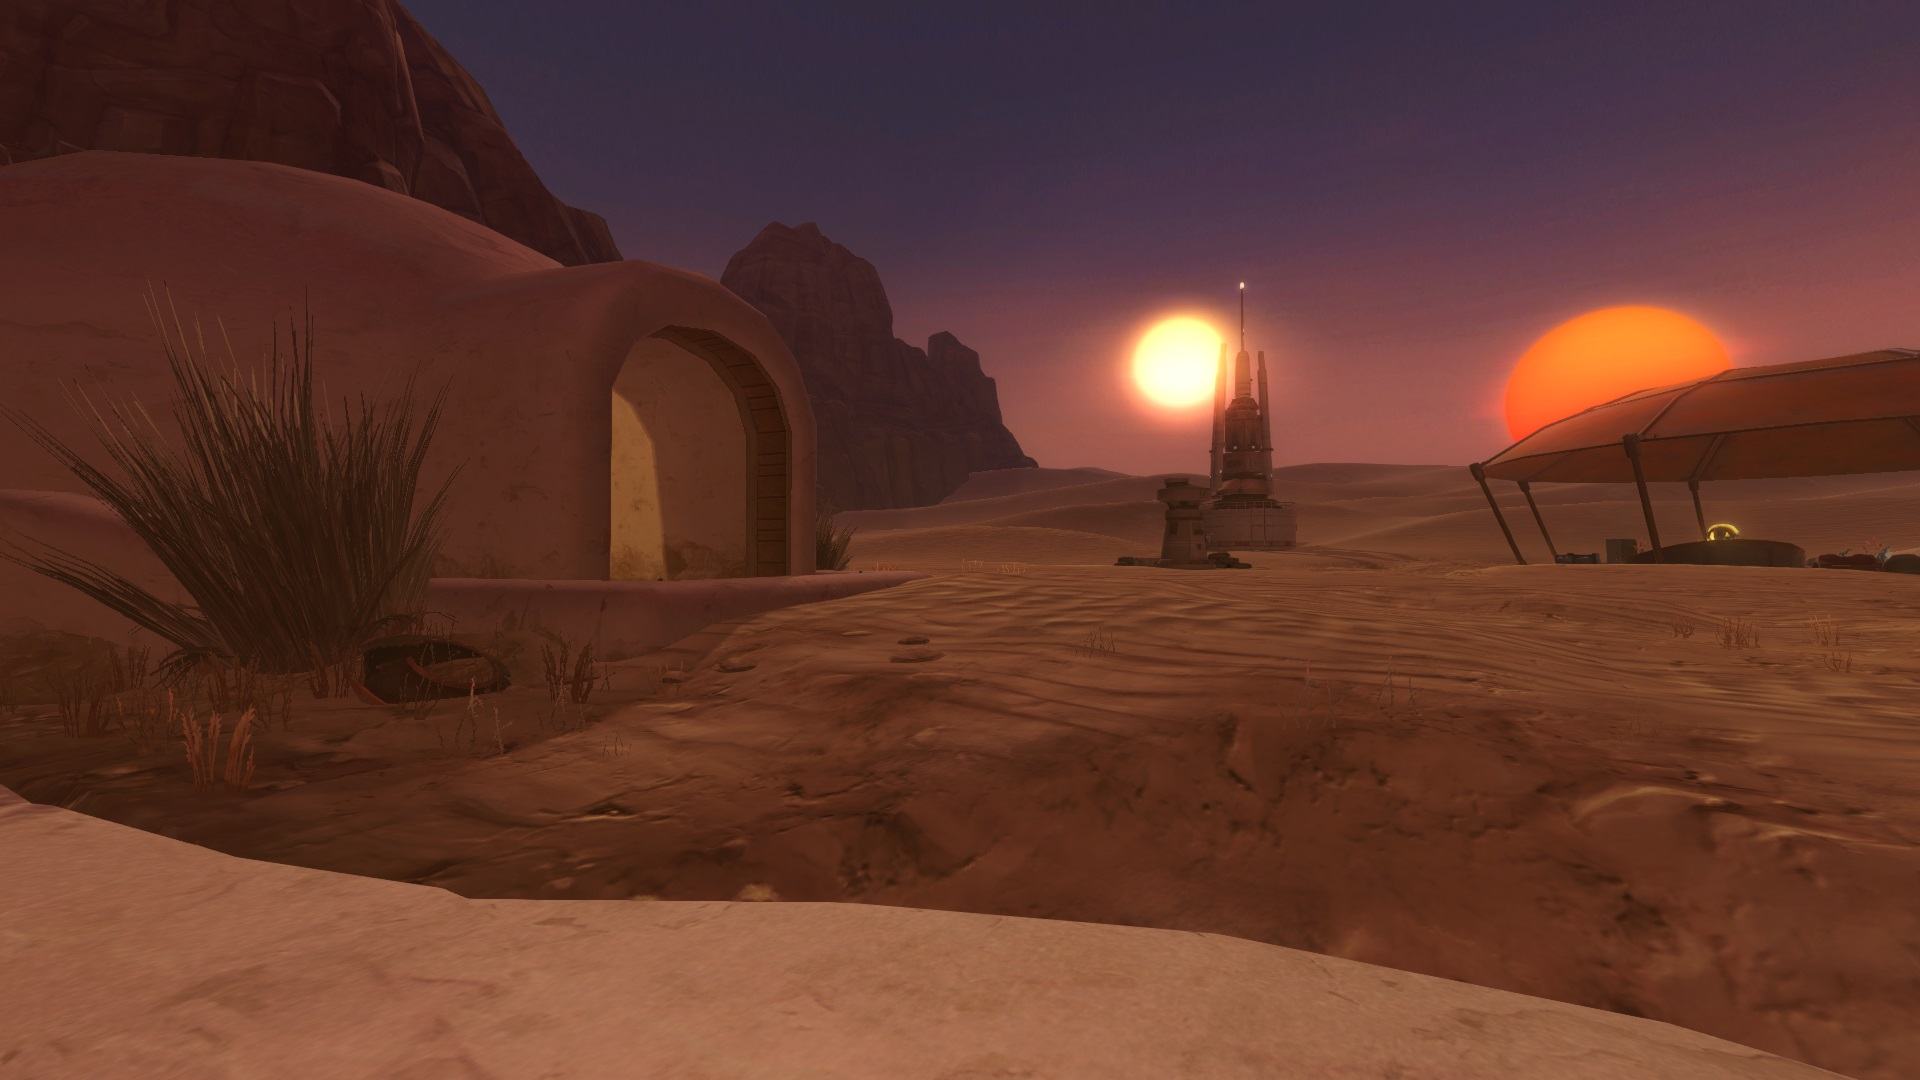 Screenshot from SWTOR's desert